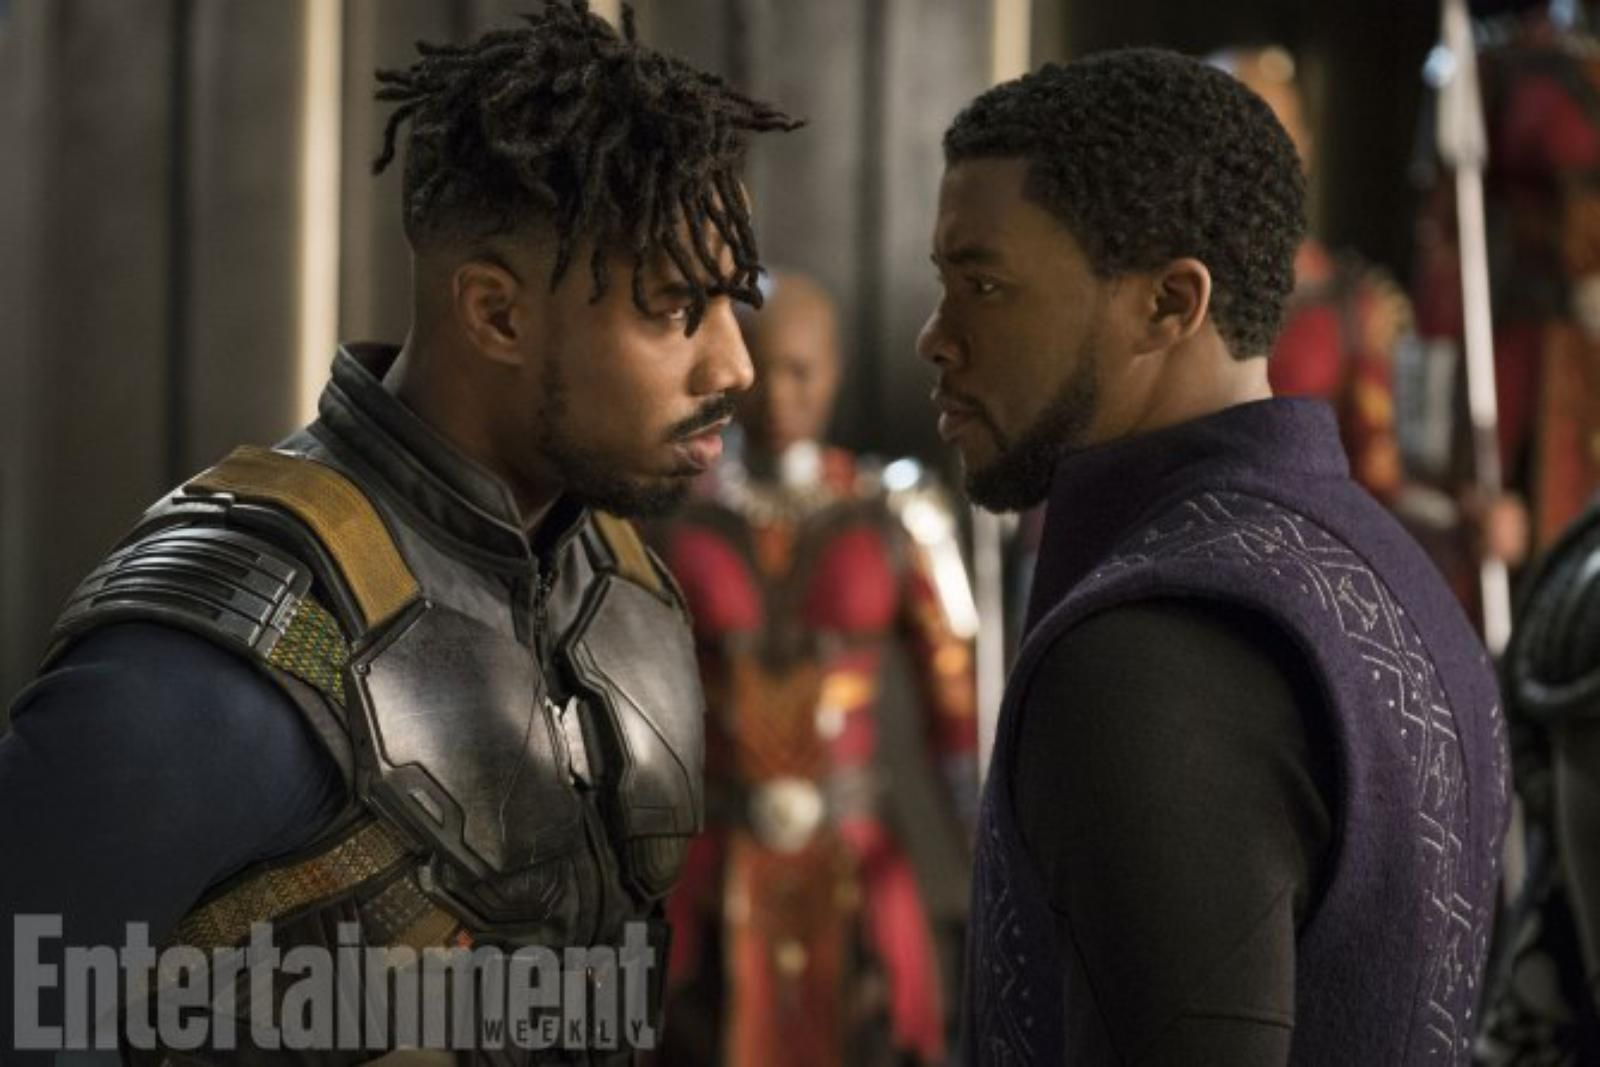 Loads of new images arrive — Black Panther